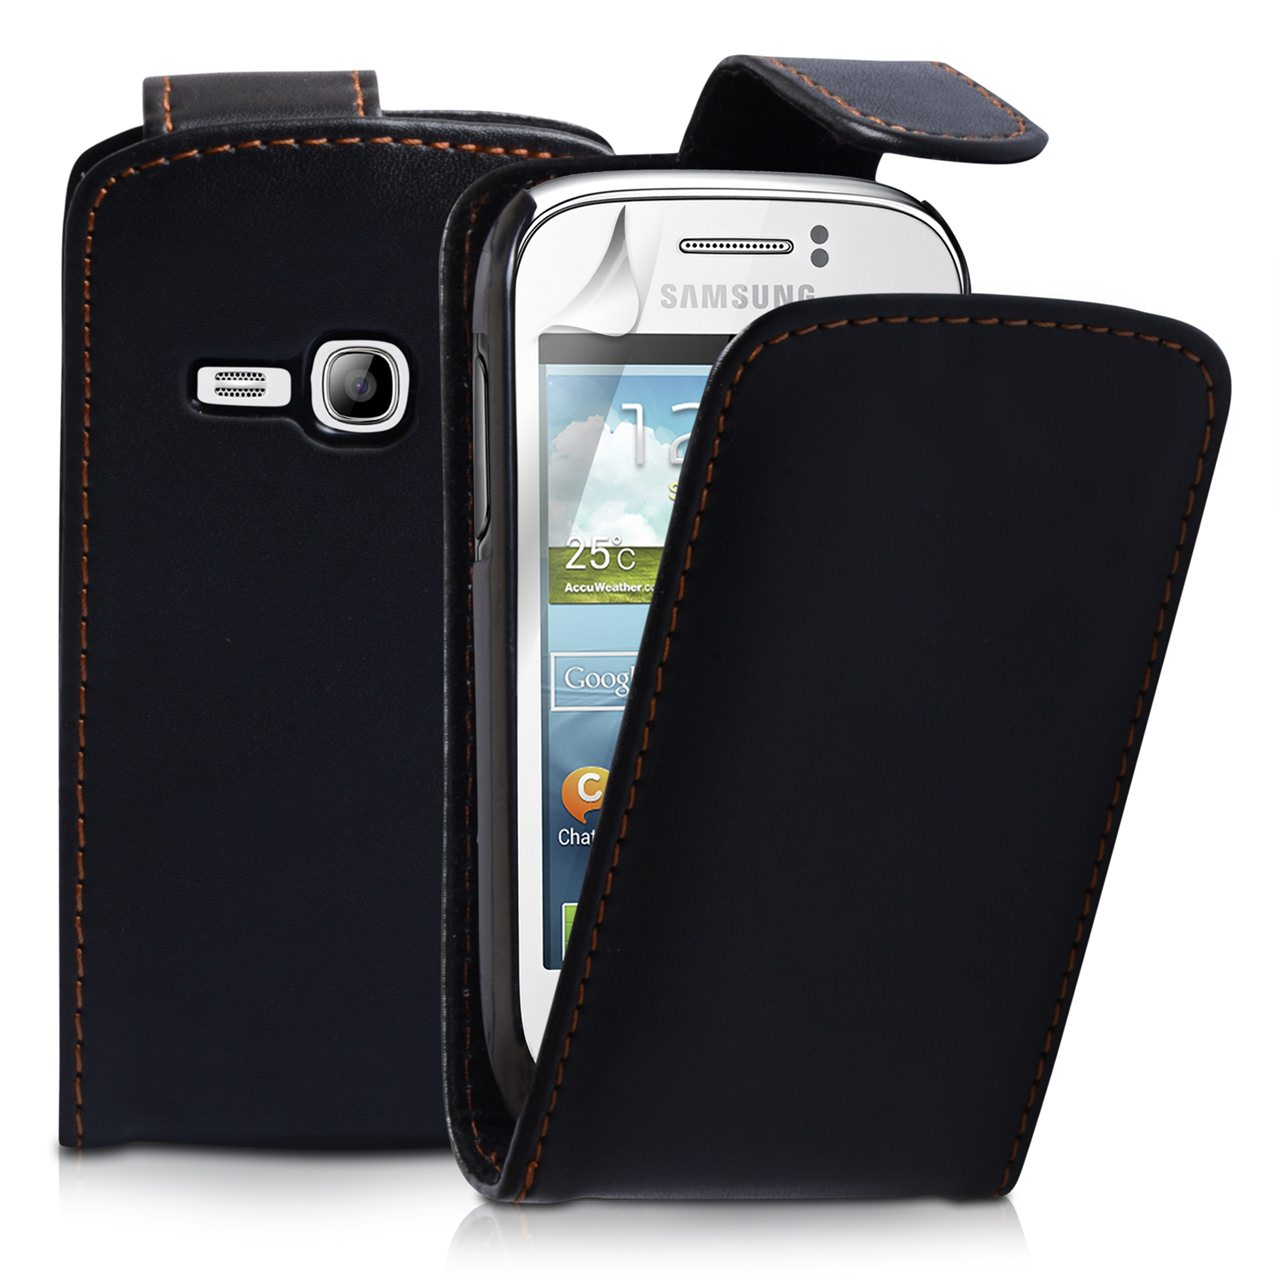 YouSave Samsung Galaxy Young Black Leather Effect Flip Case